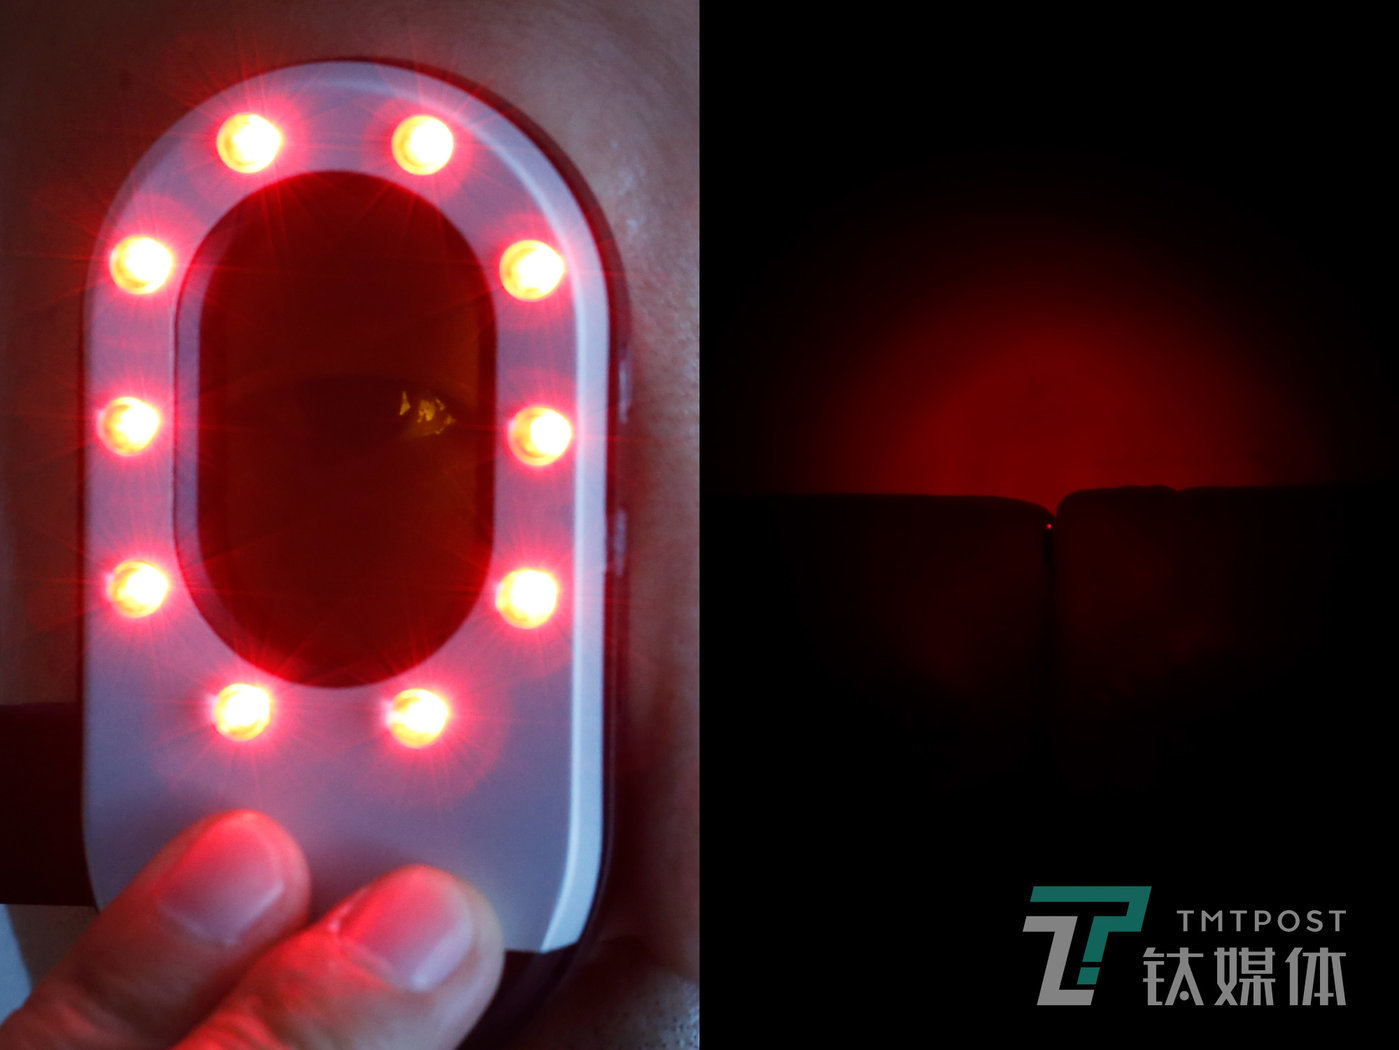 Lit up under a portable scanner, a pinhole camera shows reflected bright red dots. He Zhihui explained to TMTPOST Image that it is very difficult to detect pinhole cameras with the naked eye. If professional detection devices are not available, portable pinhole camera scanners can also be used to inspect the safety of indoor areas.